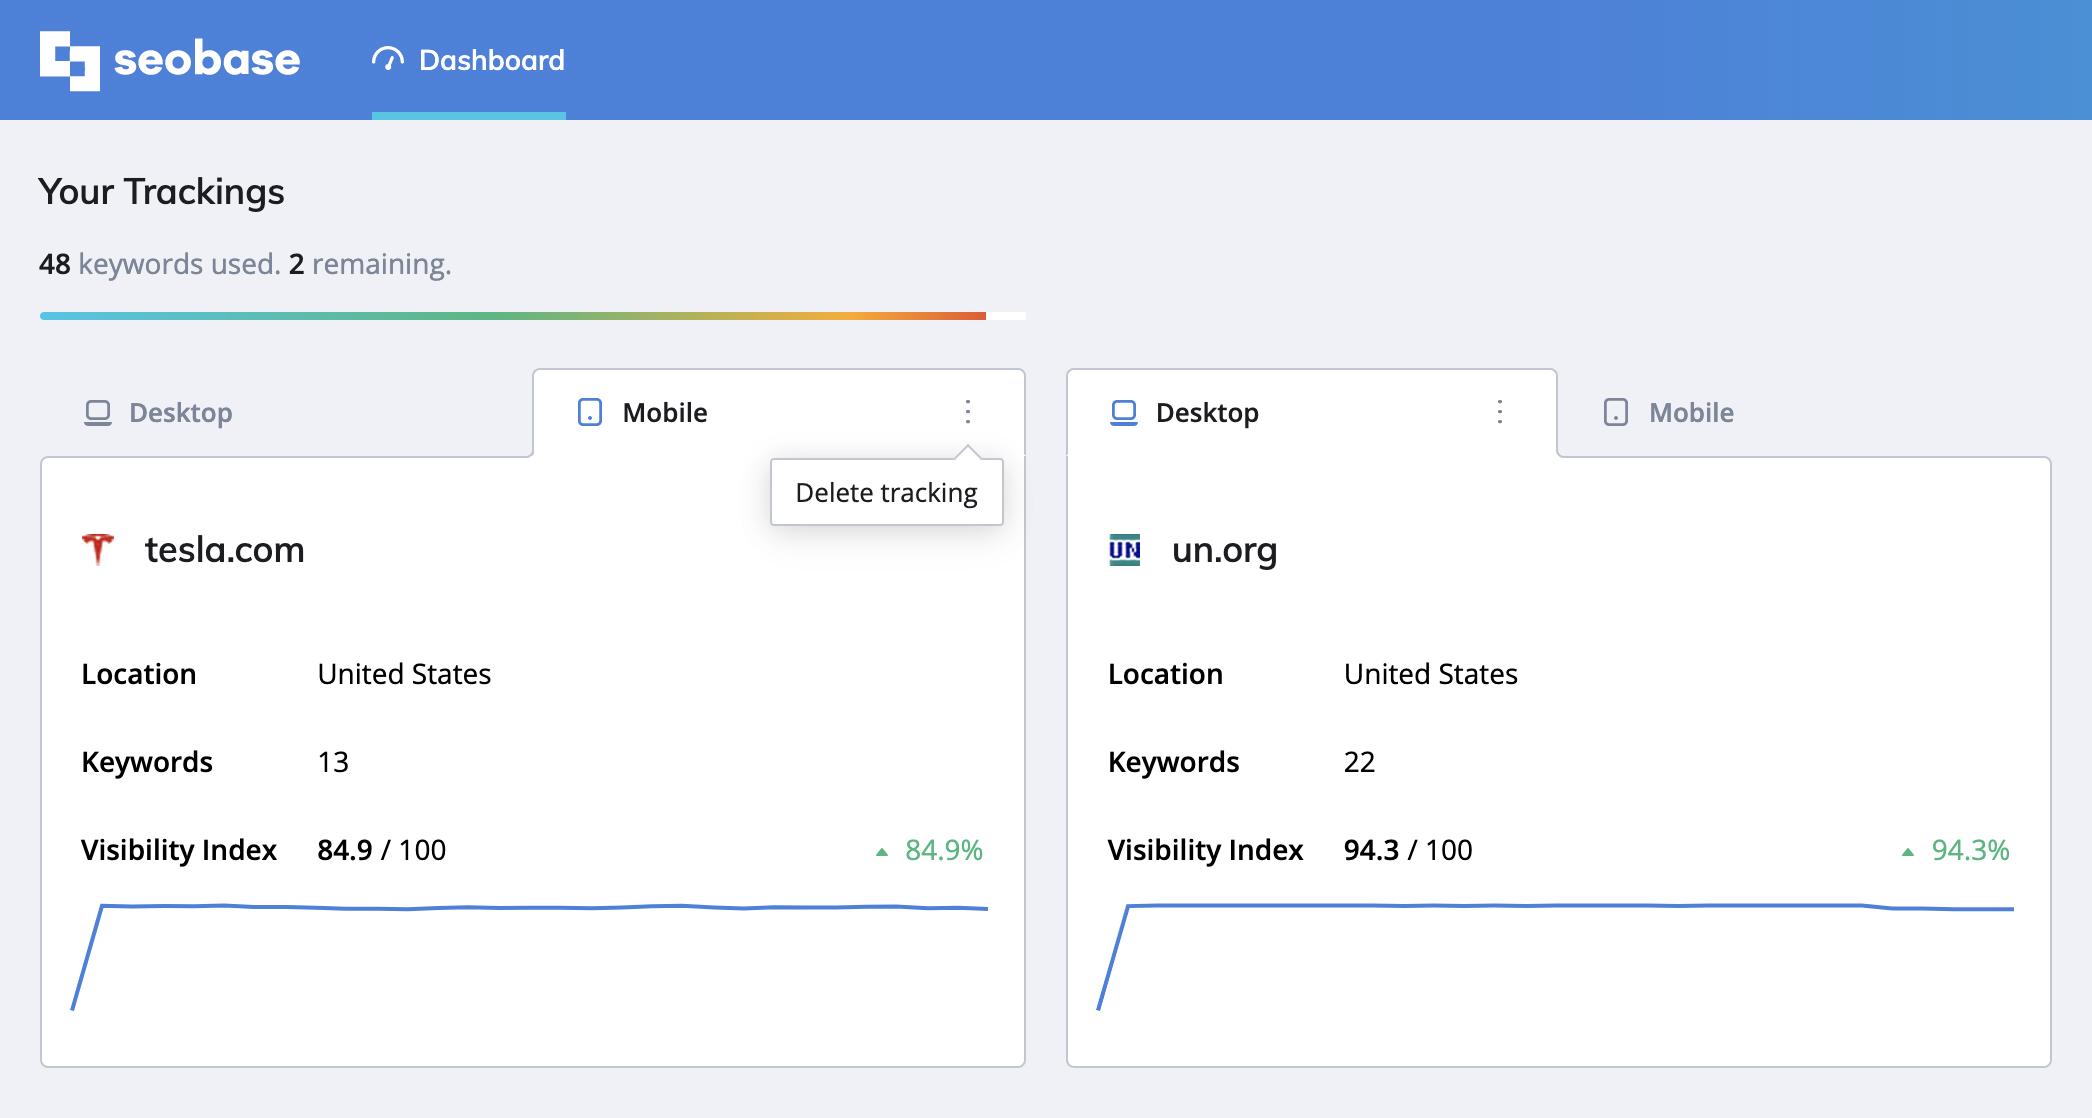 seobase dashboard, tracking info, desktop and mobile trackings, delete tracking